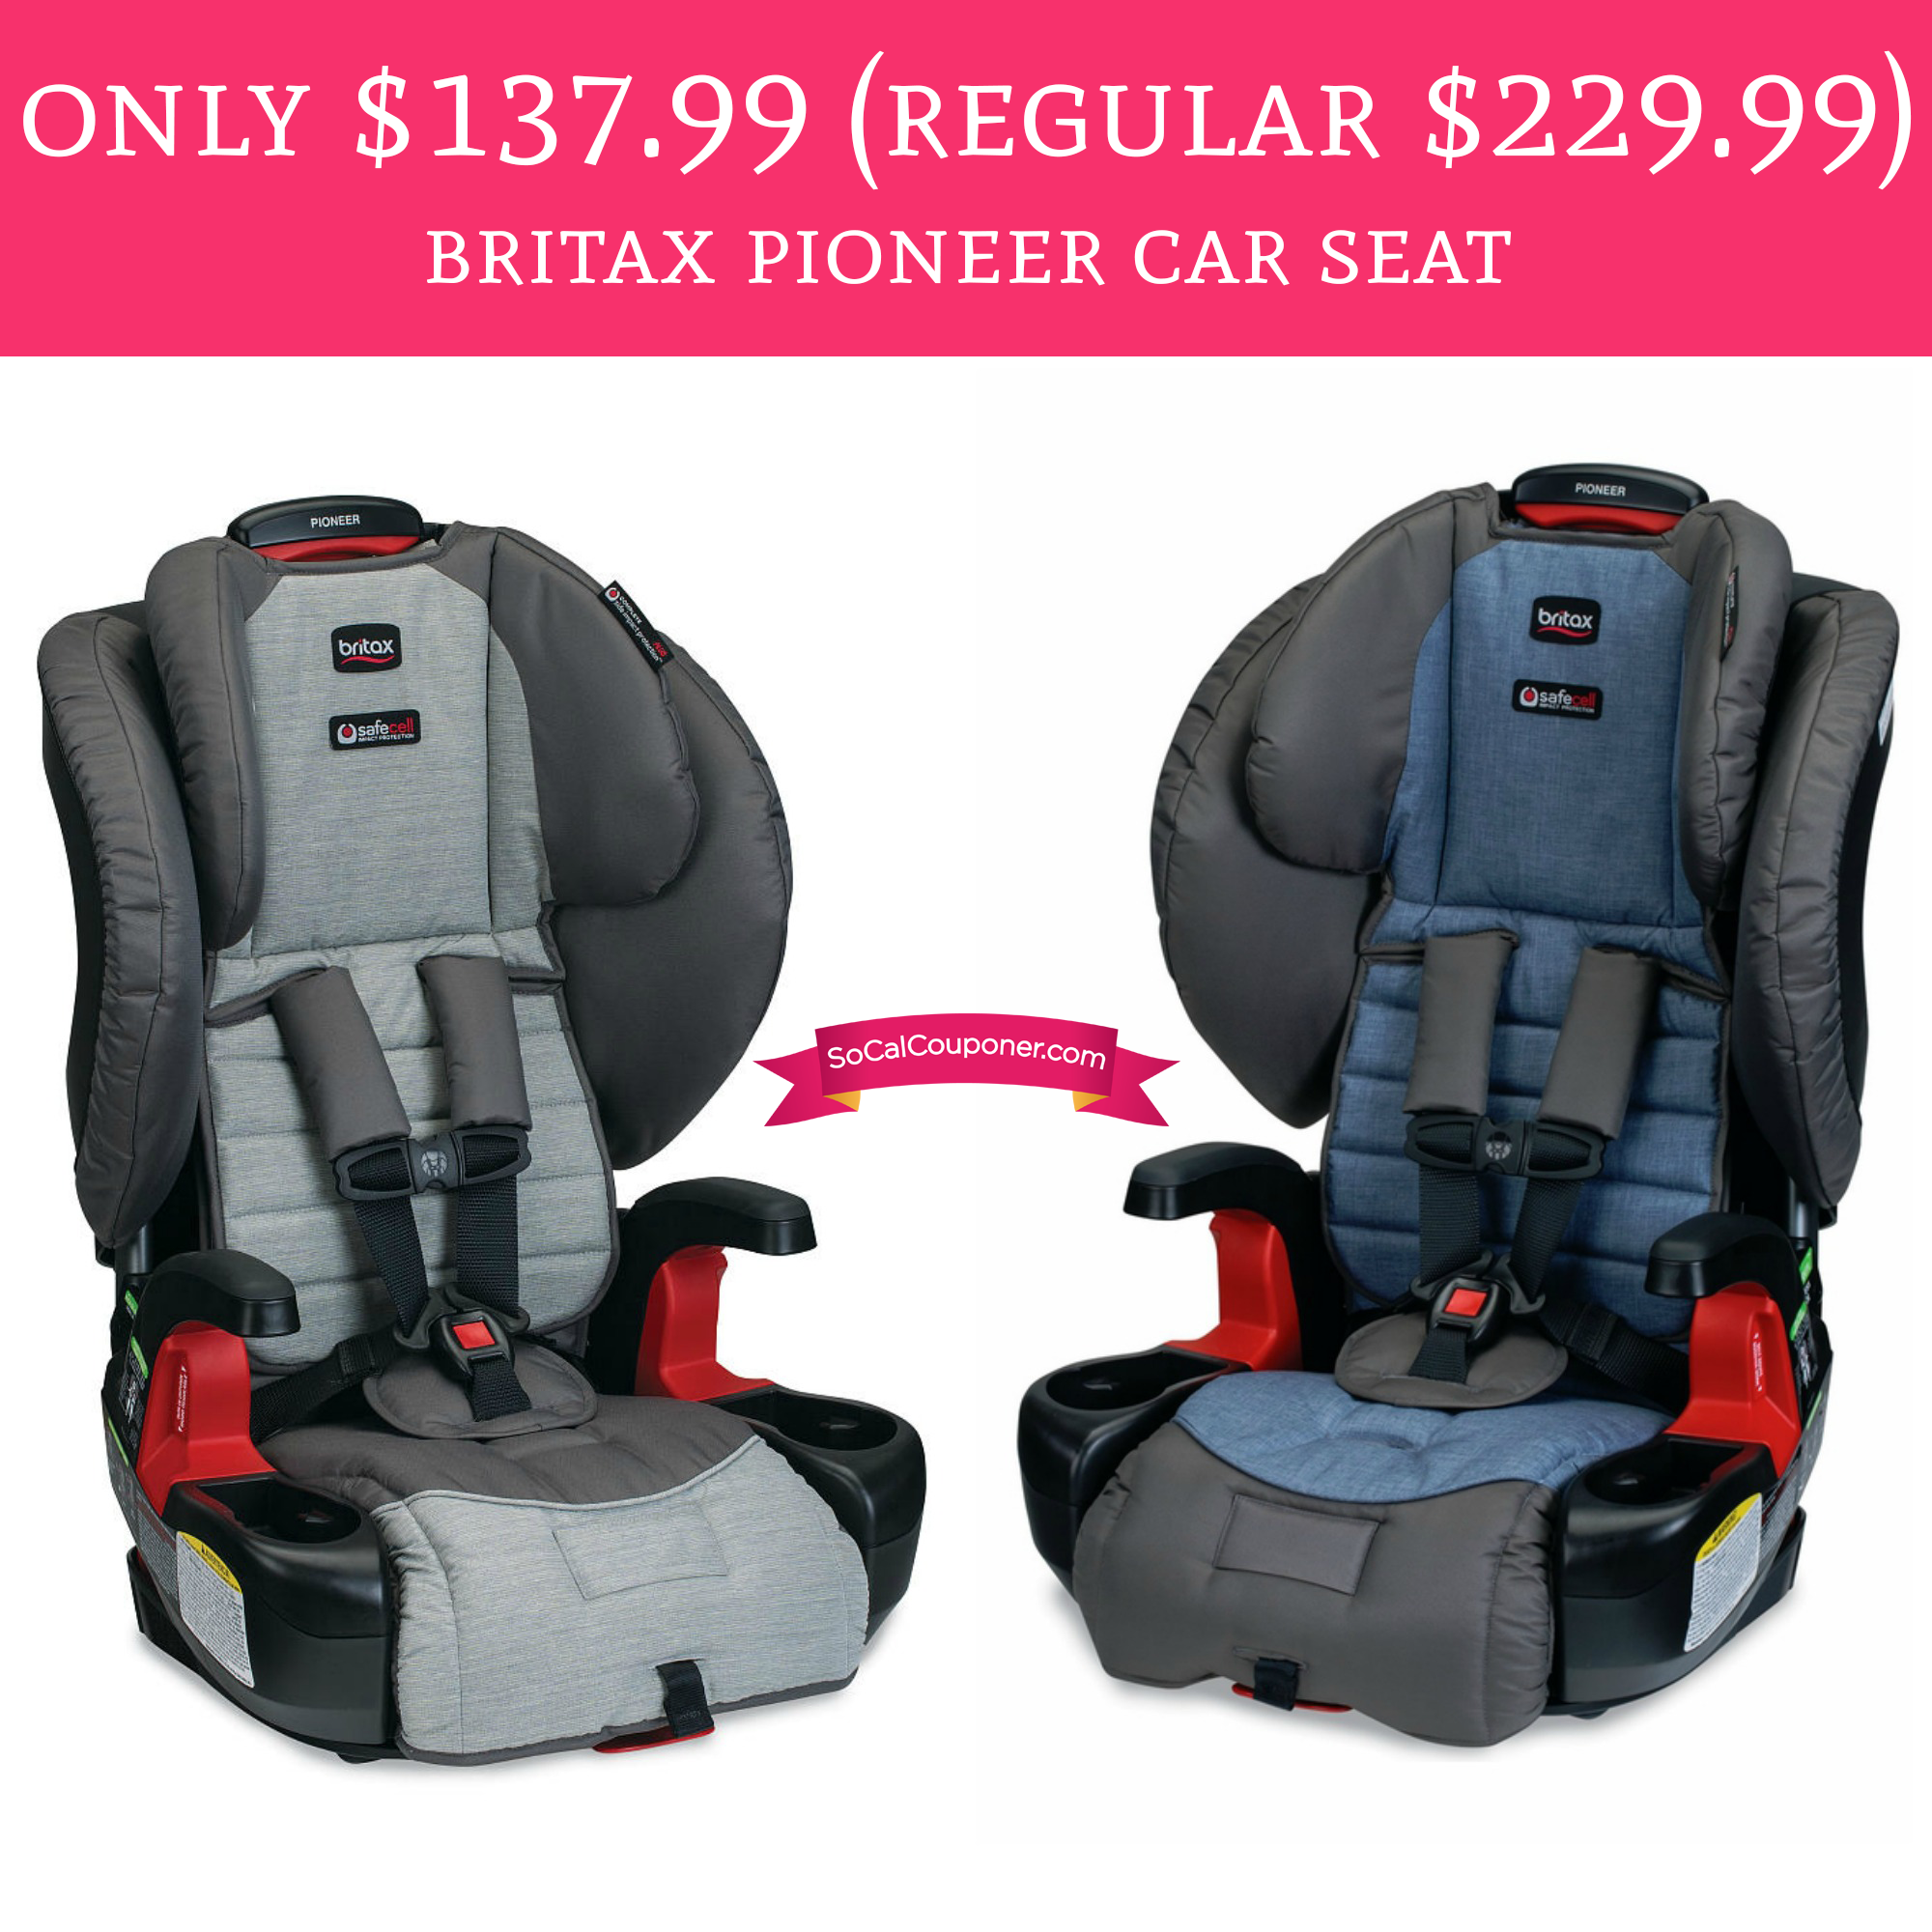 Head On Over To Amazon Score An Britax Pioneer Car Seat For Only 13999 Regular Price 22999 This Is Highly Rated At 45 Stars With 400 Reviews